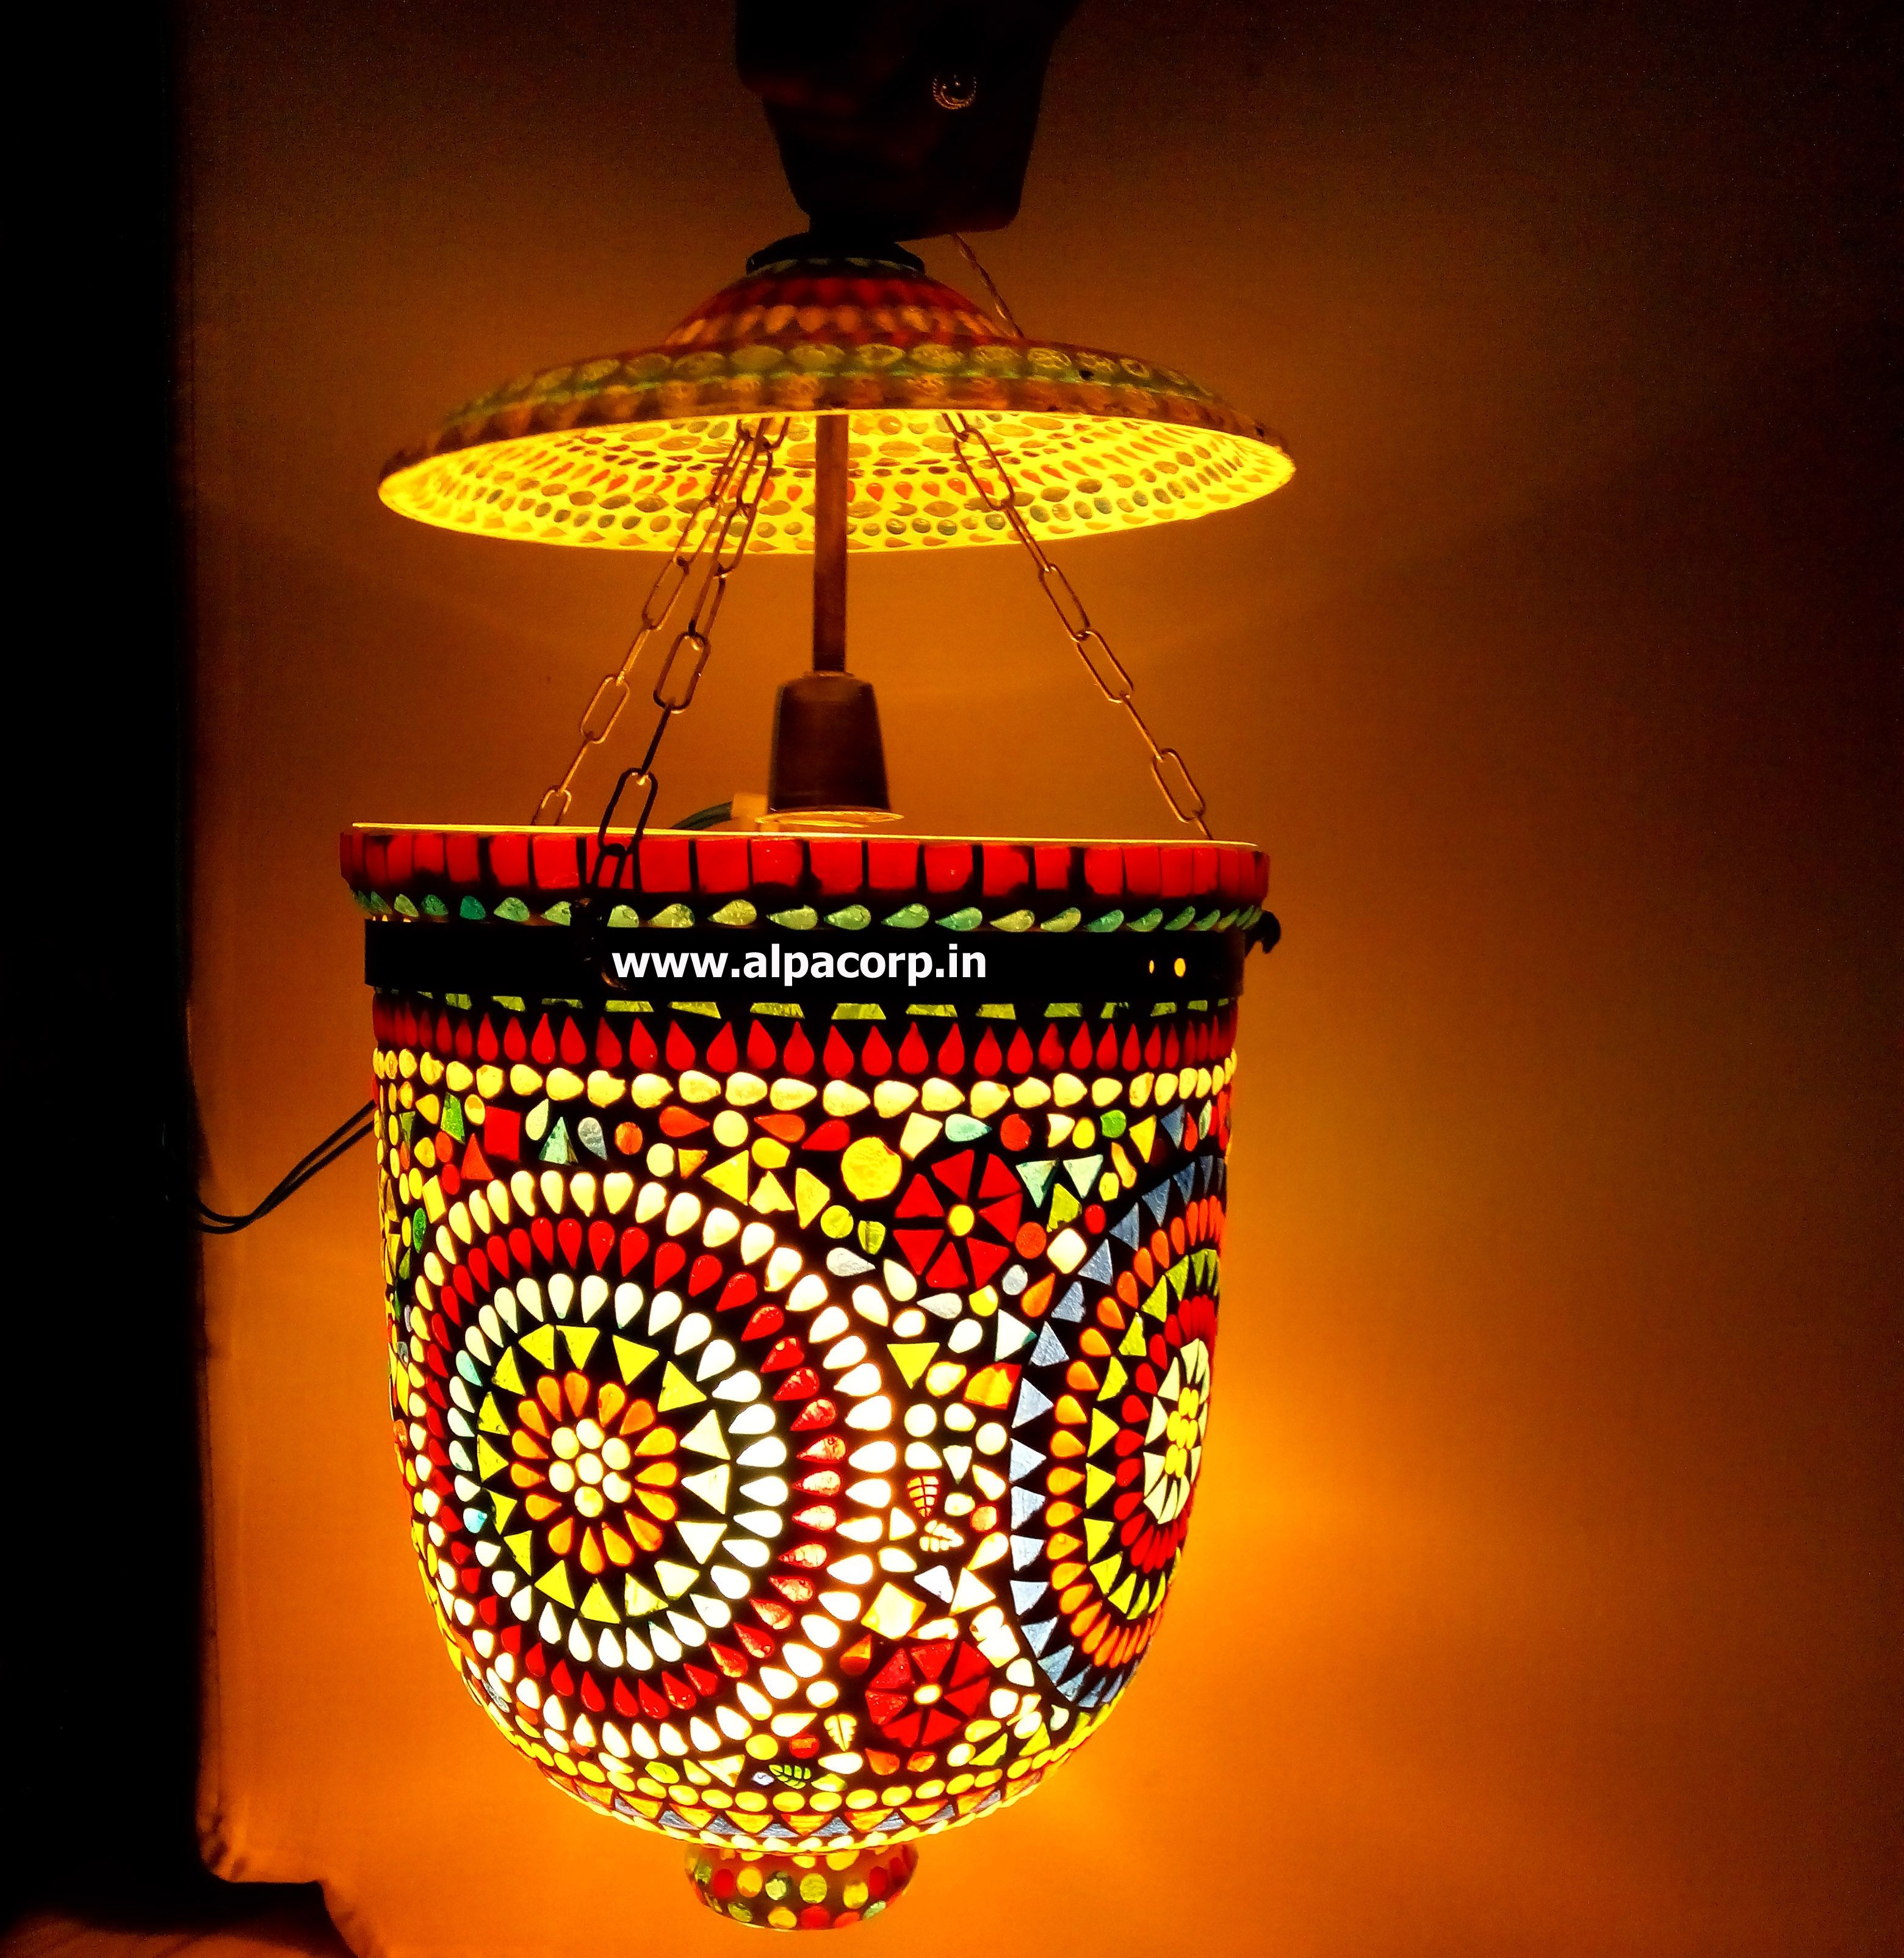 Night lamps india - Hand Art On Glass Lamp Handicraft Lamp From India By Alpa Corp Www